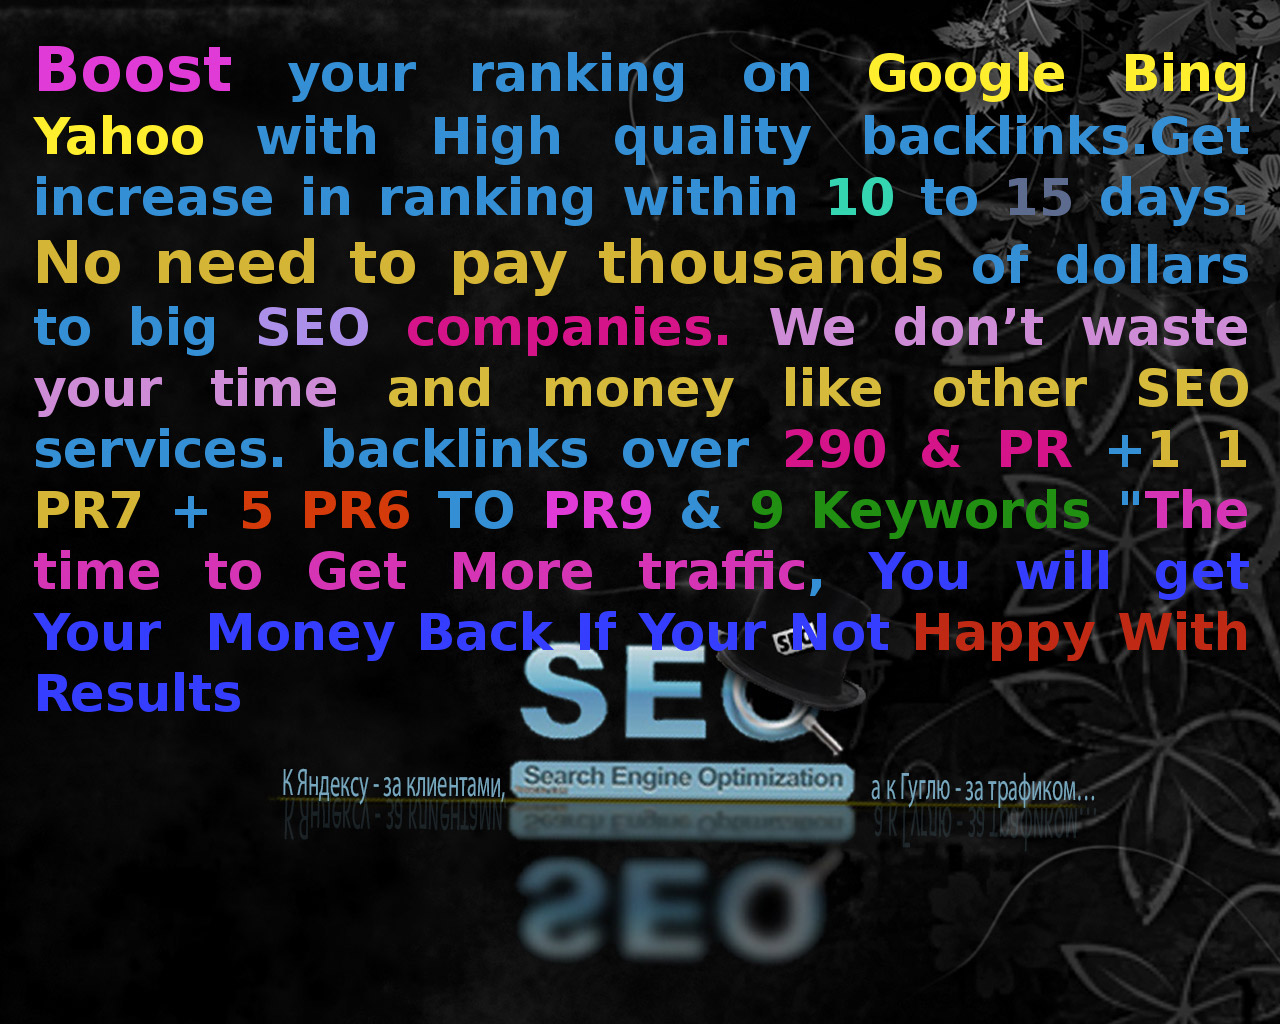 I will Boost your ranking on Google Yahoo Bing within 10 to 15 days for